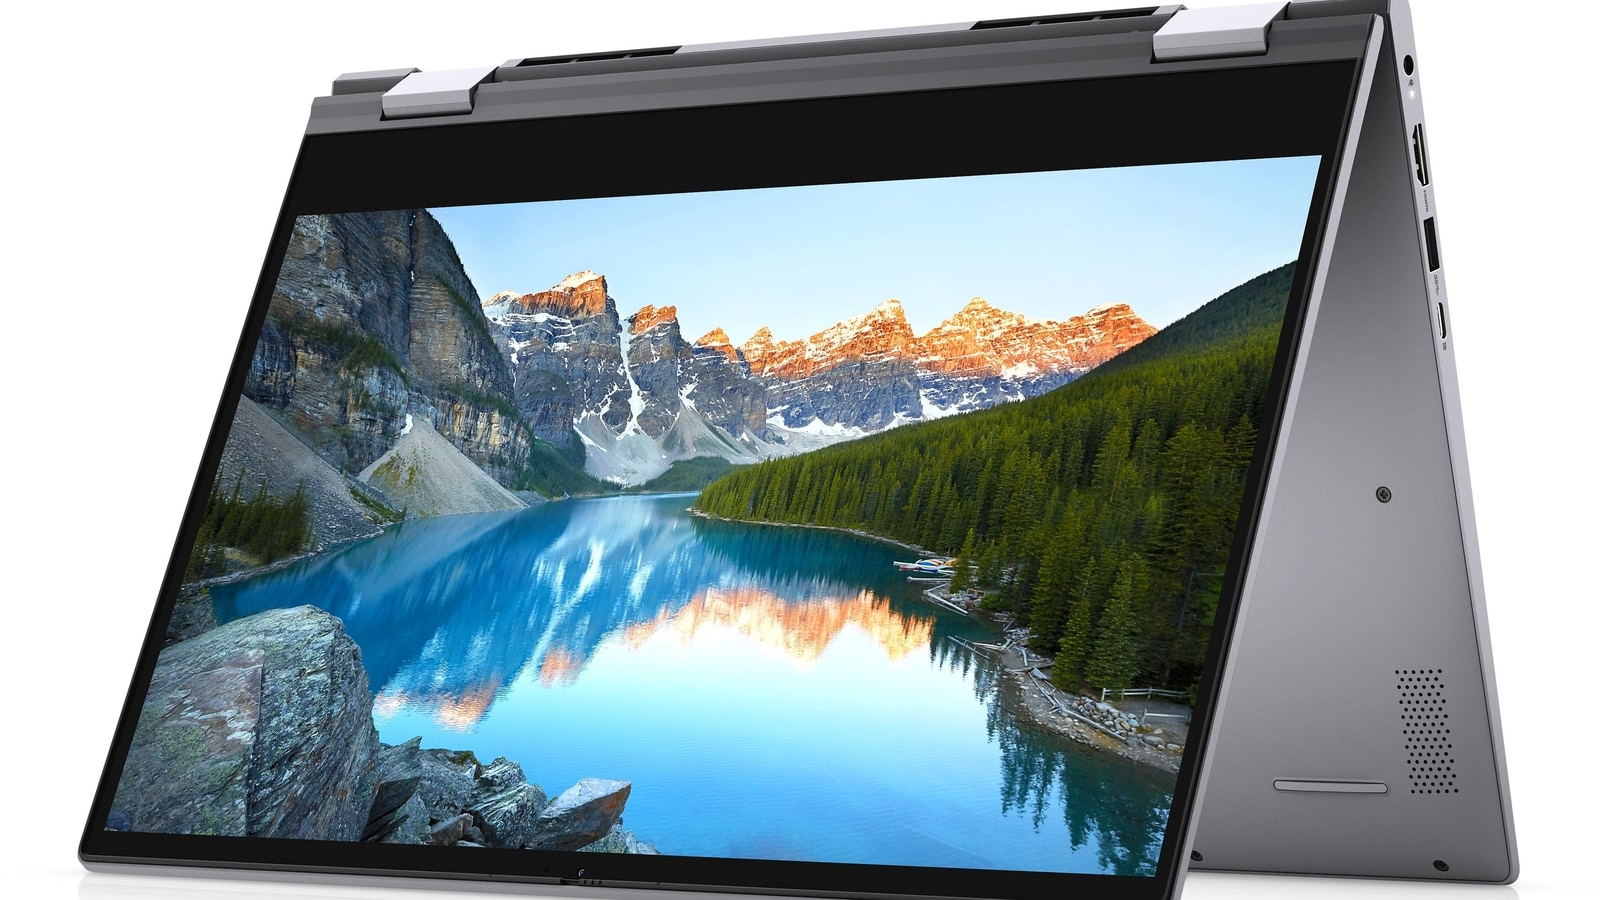 Dell launches Inspiron 13, Inspiron 14, Inspiron 15 laptops in India: check price and specifications